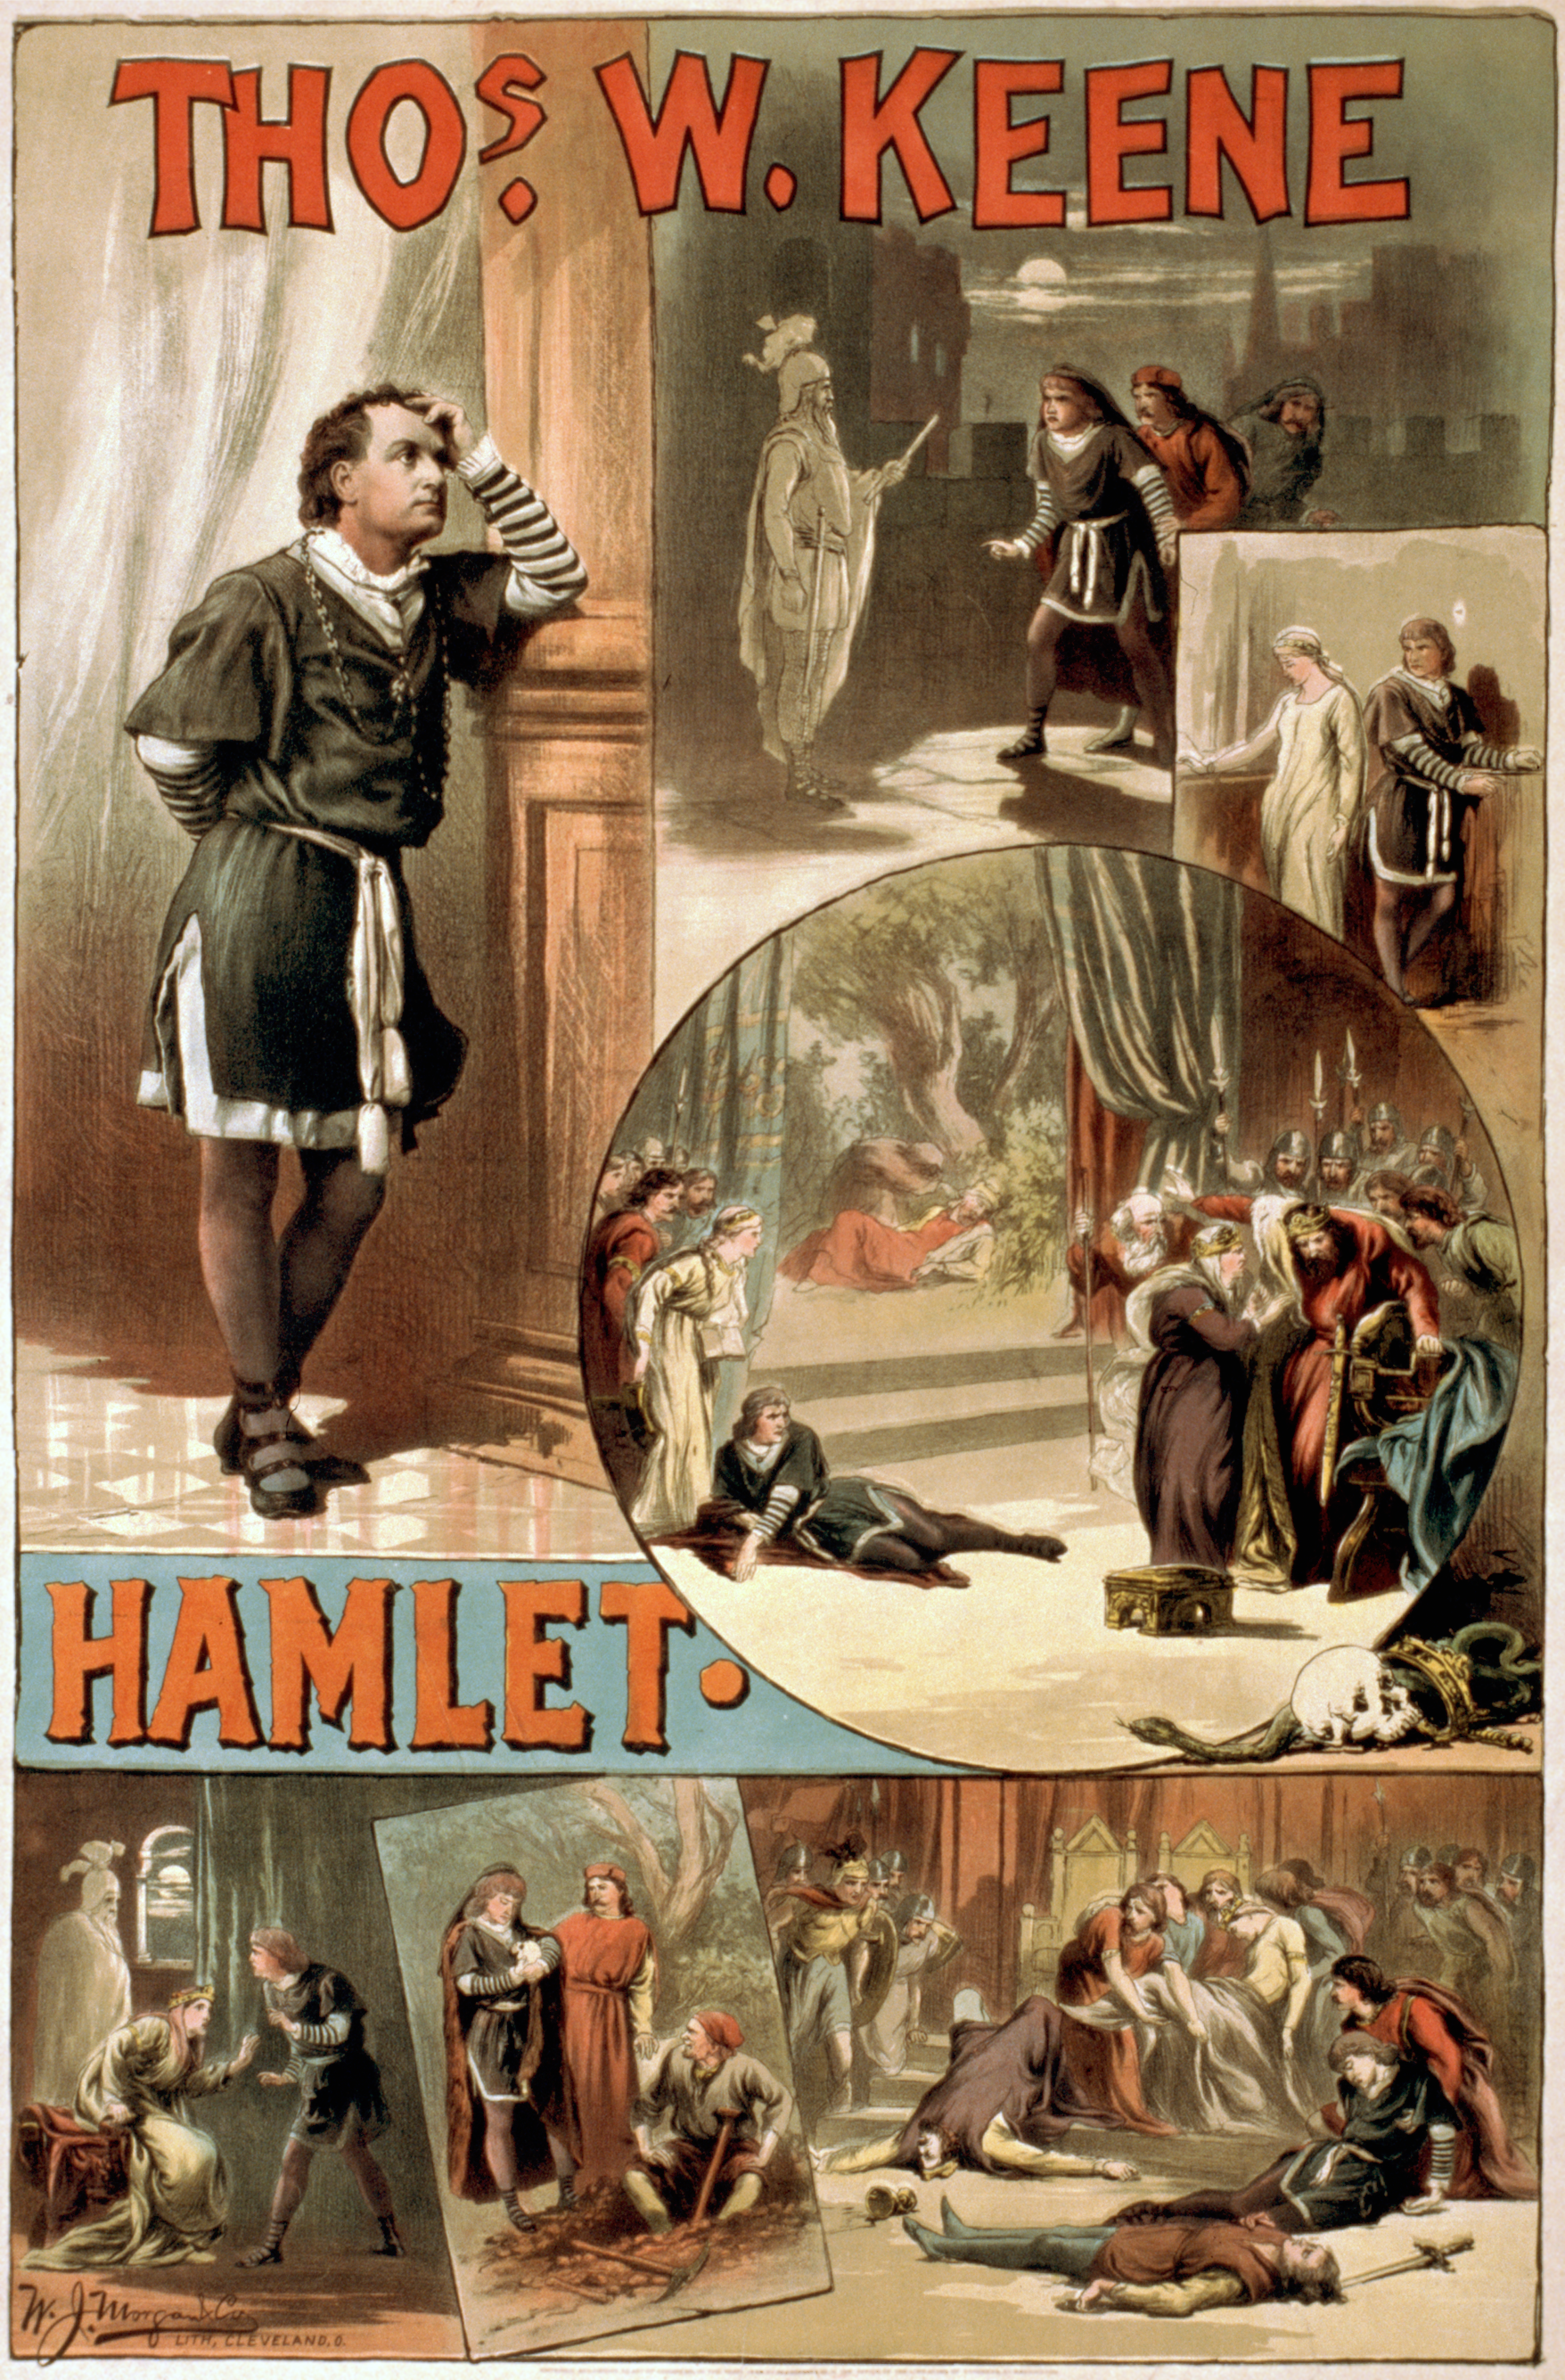 hamlet 1884 for an american production of hamlet starring thomas w keene showing several of the key scenes